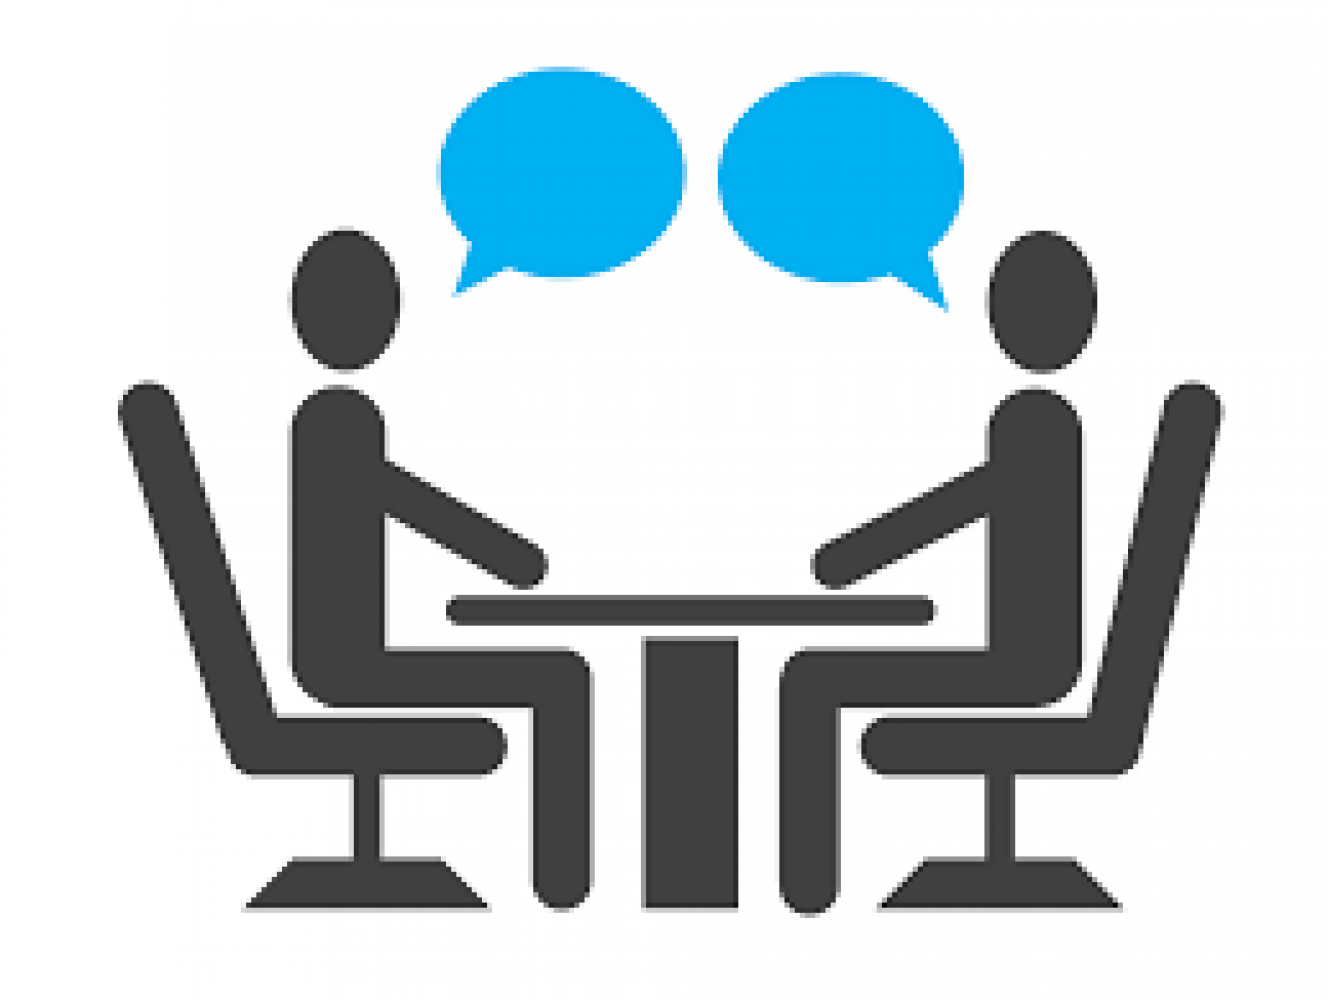 Mock Interview Png - Mock Interview Practise Sessions! Offered By Rods Employment Services!, Transparent background PNG HD thumbnail